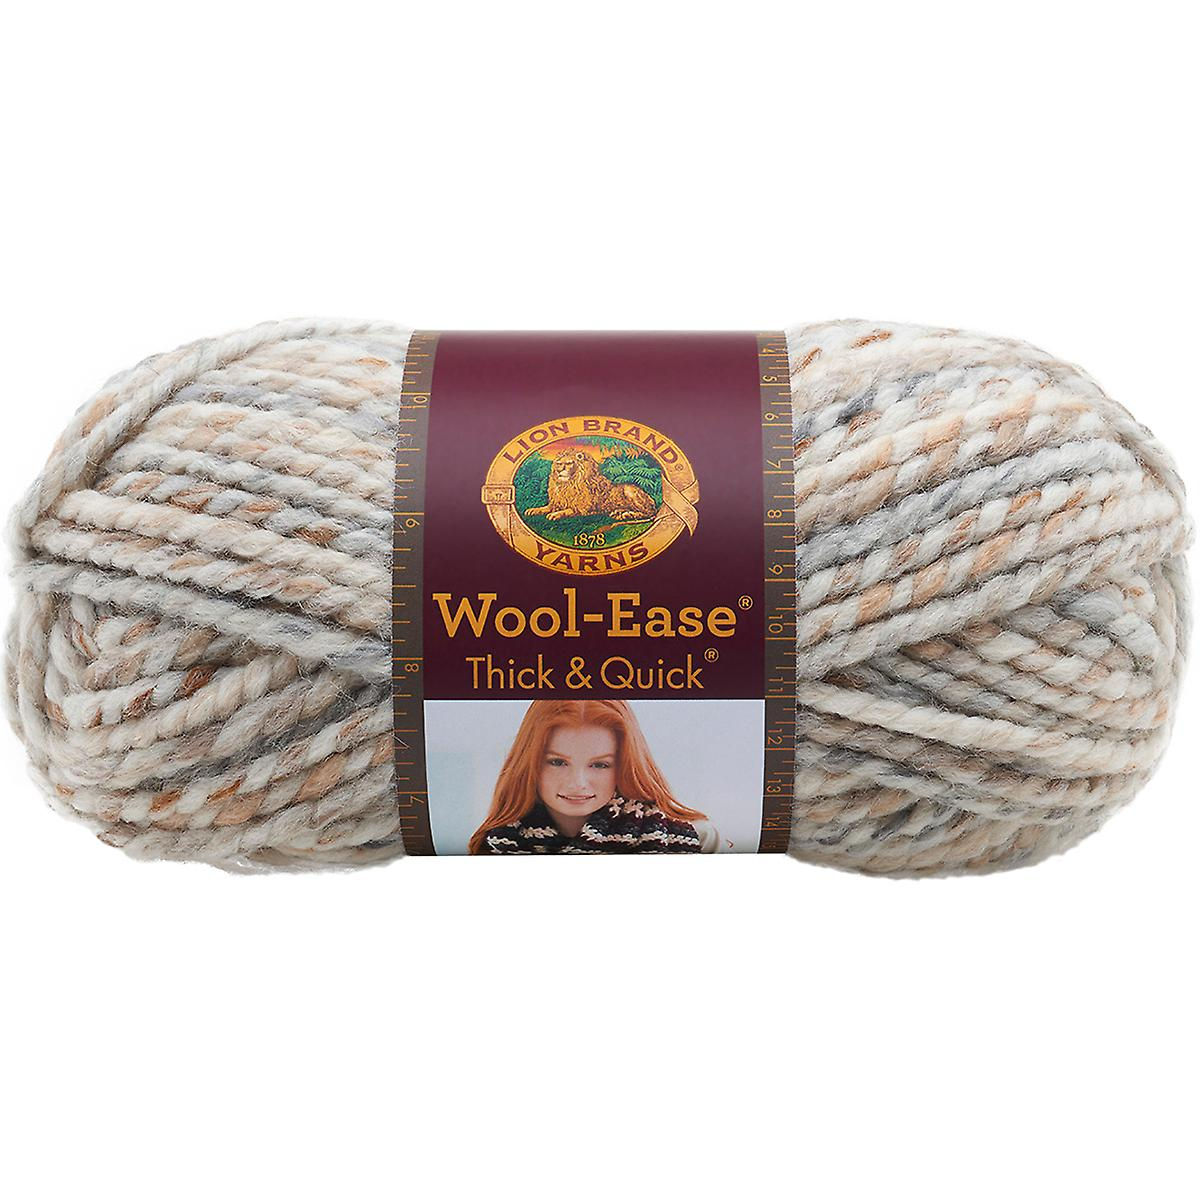 Wool-Ease Thick & Quick Yarn-Fossil 640-536